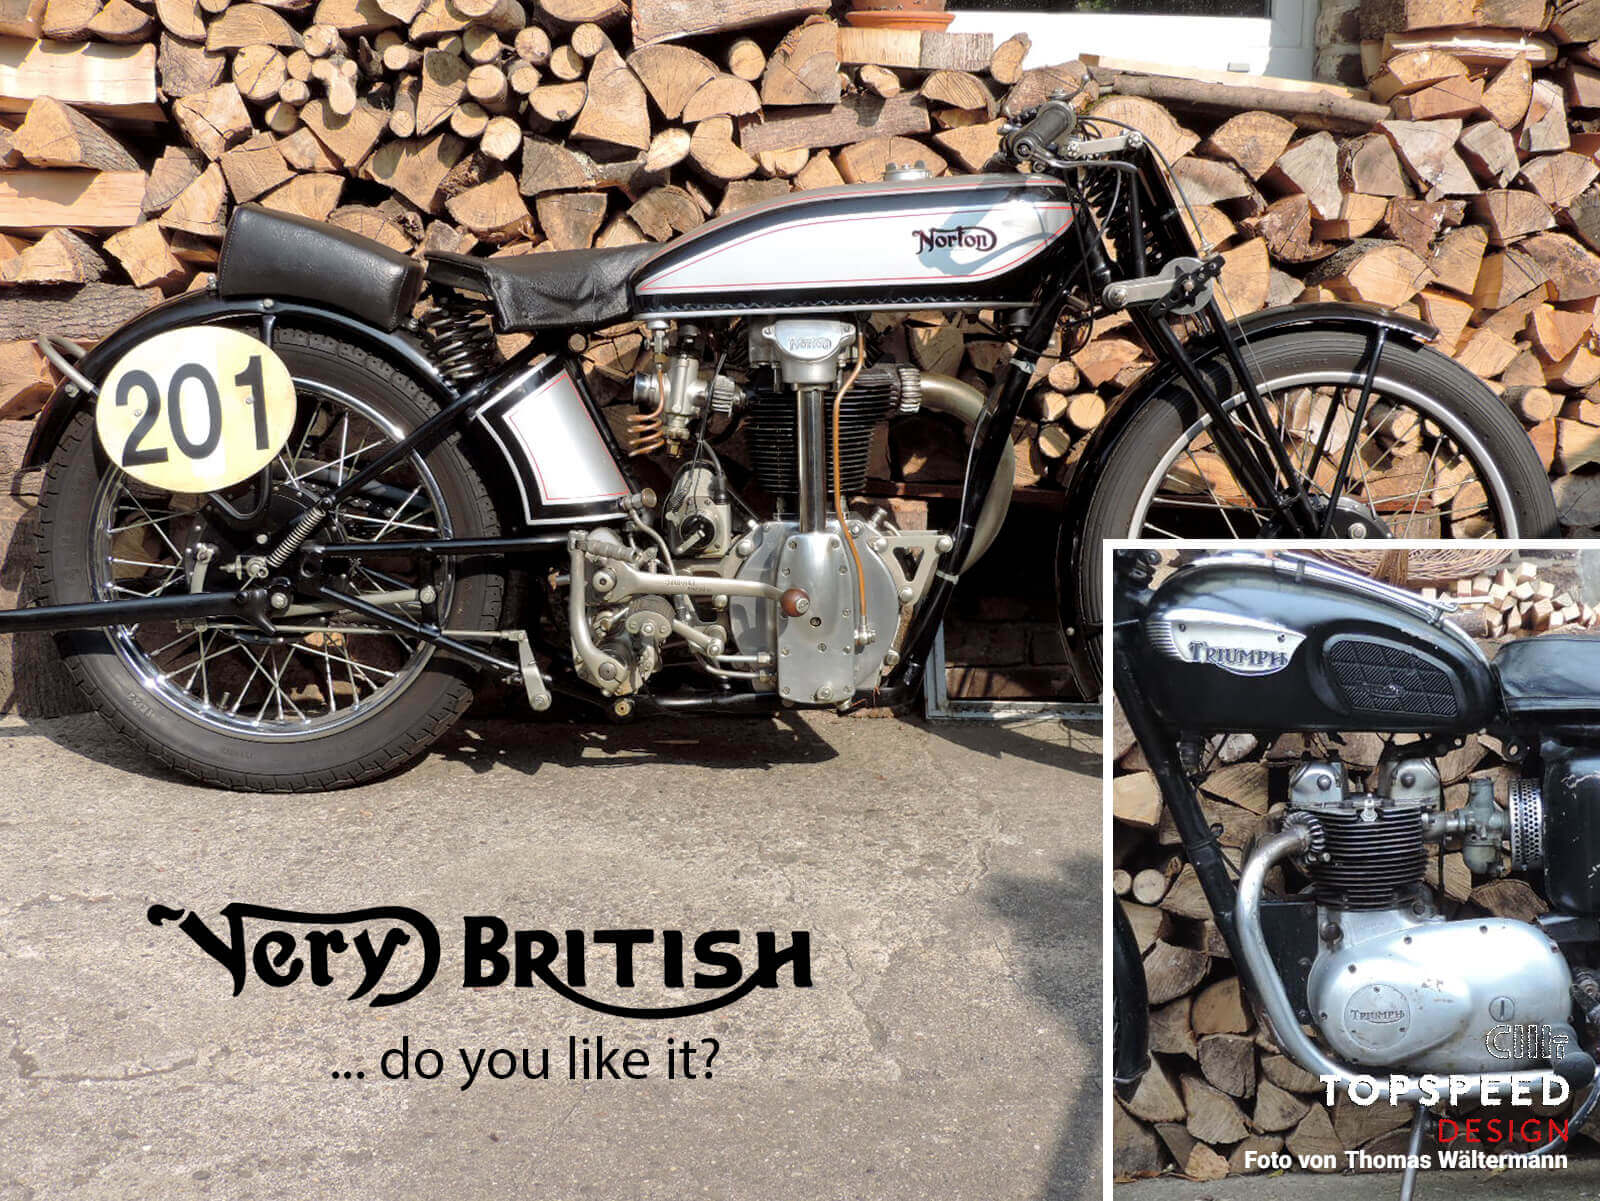 Very British...do you like it? | Topspeed-Design by Bernhard Schmidt